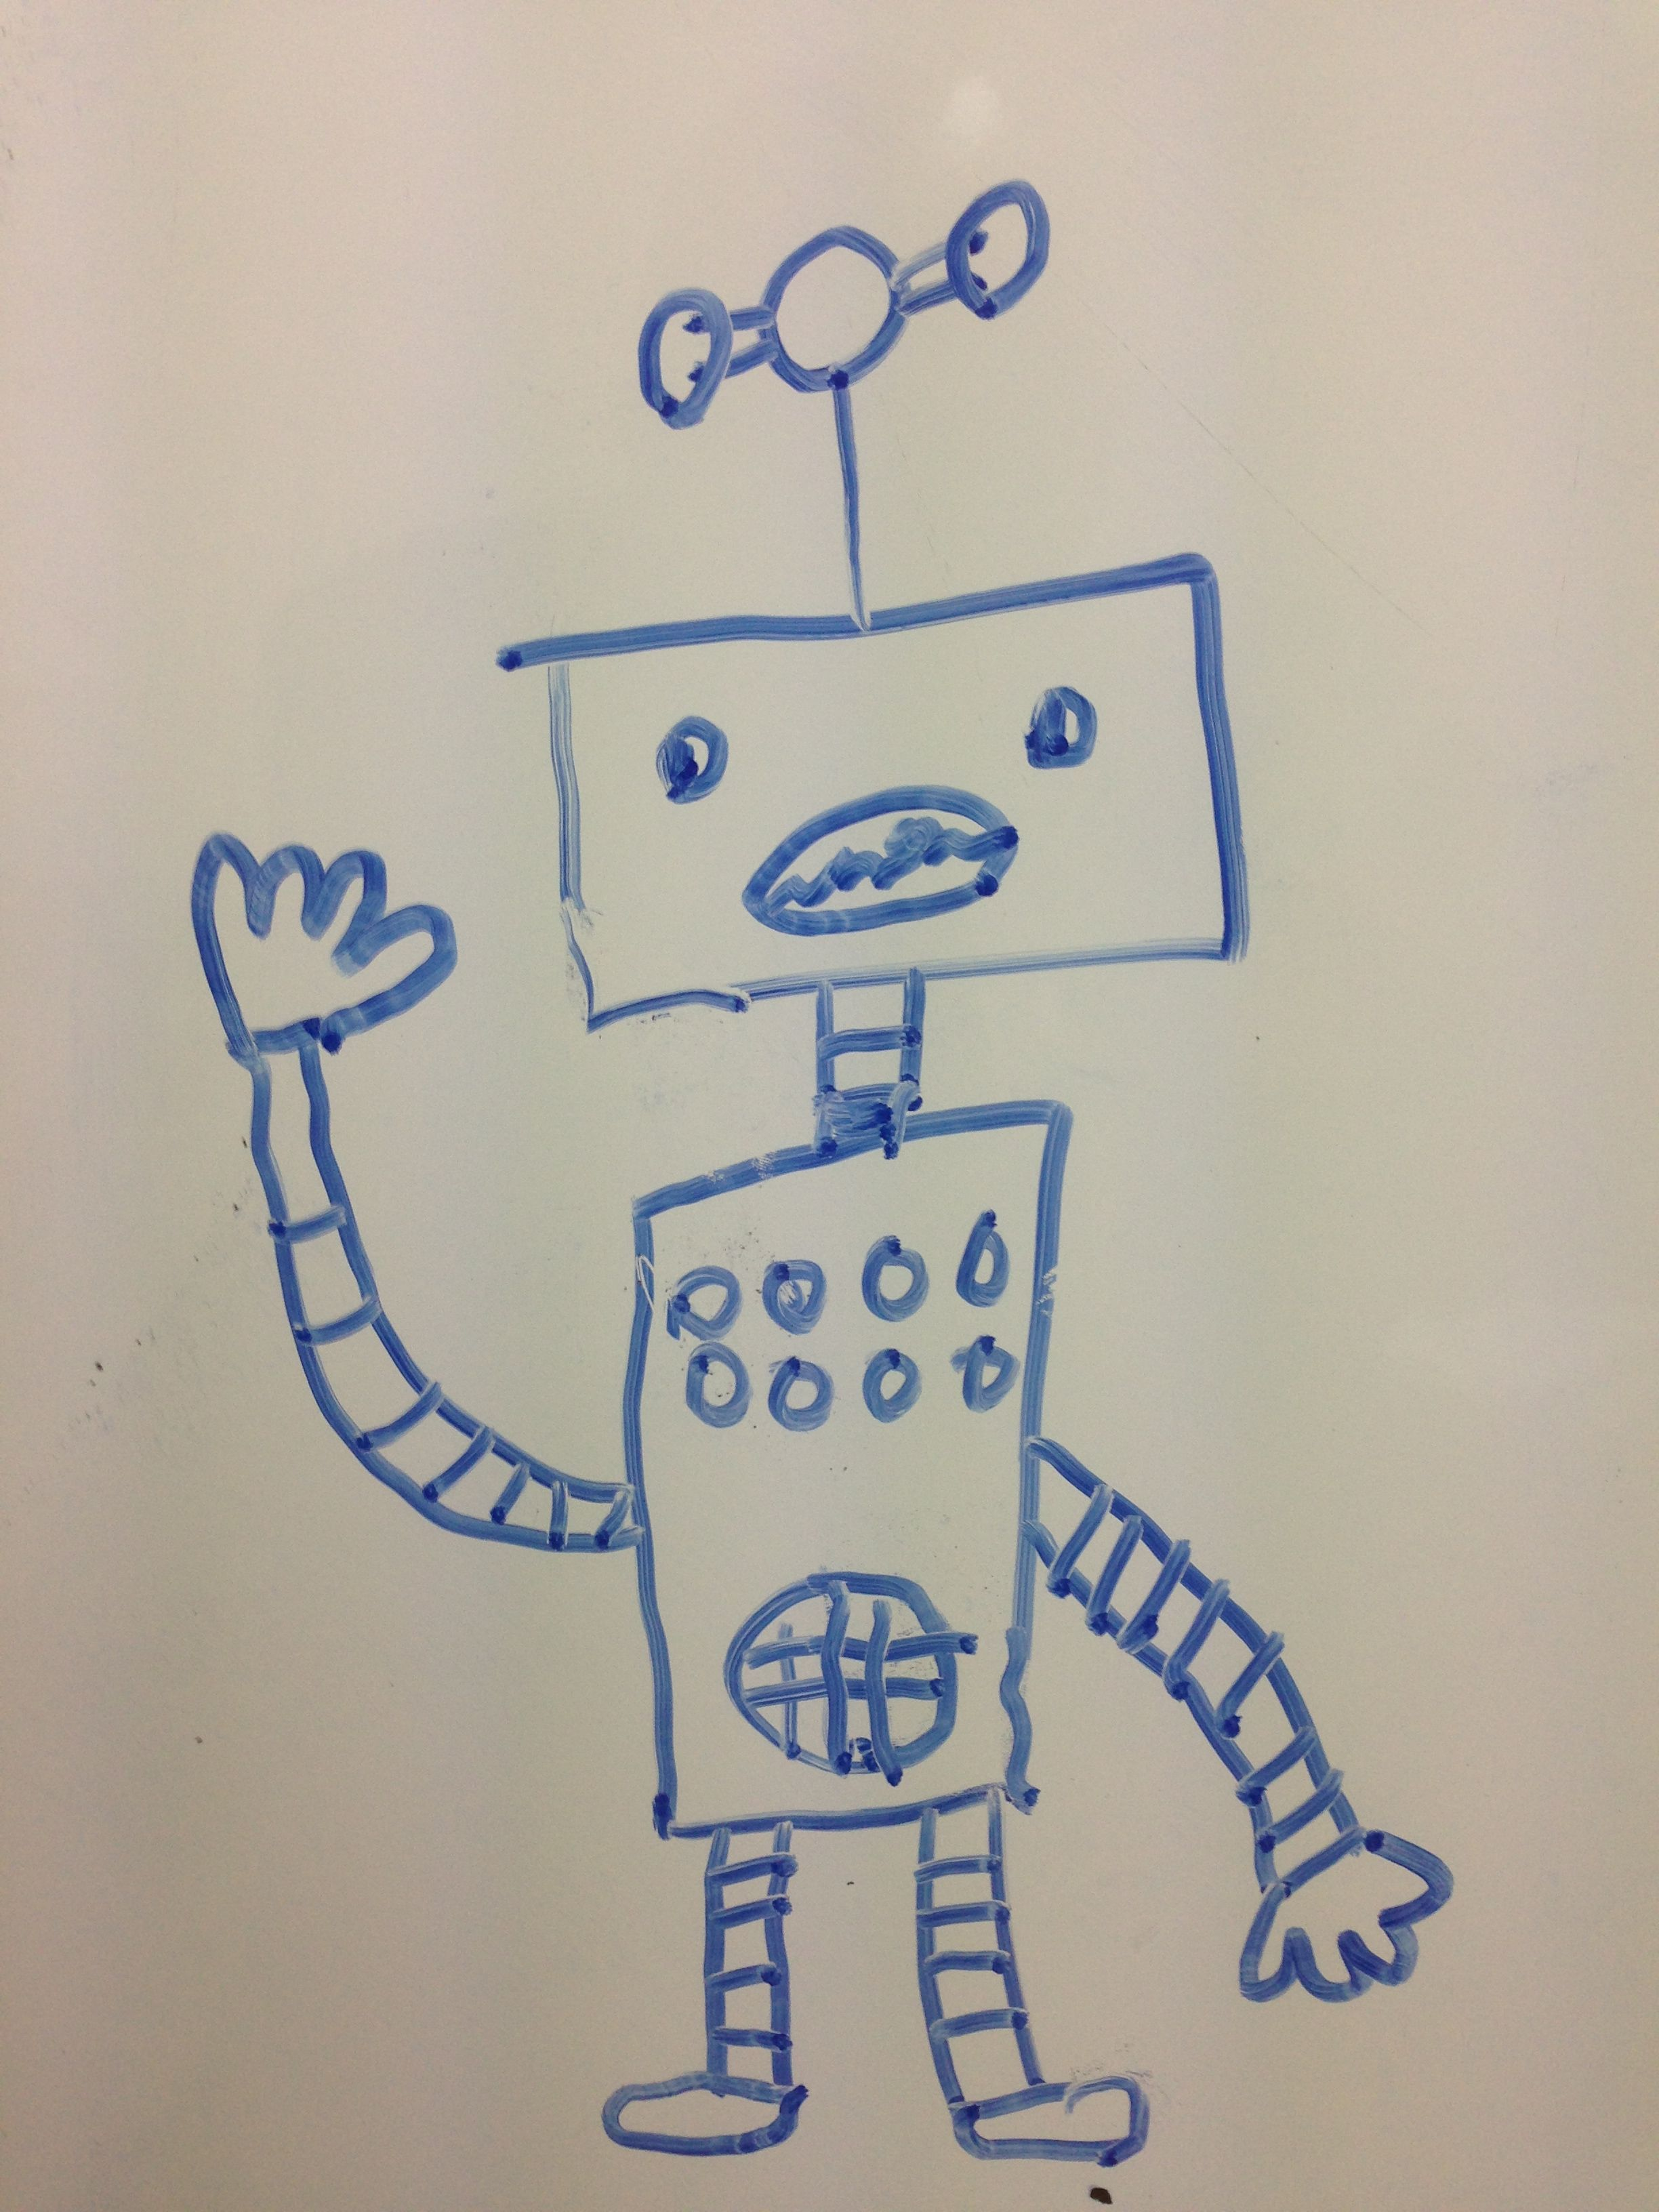 A robot that one of my Japanese students drew on the board.